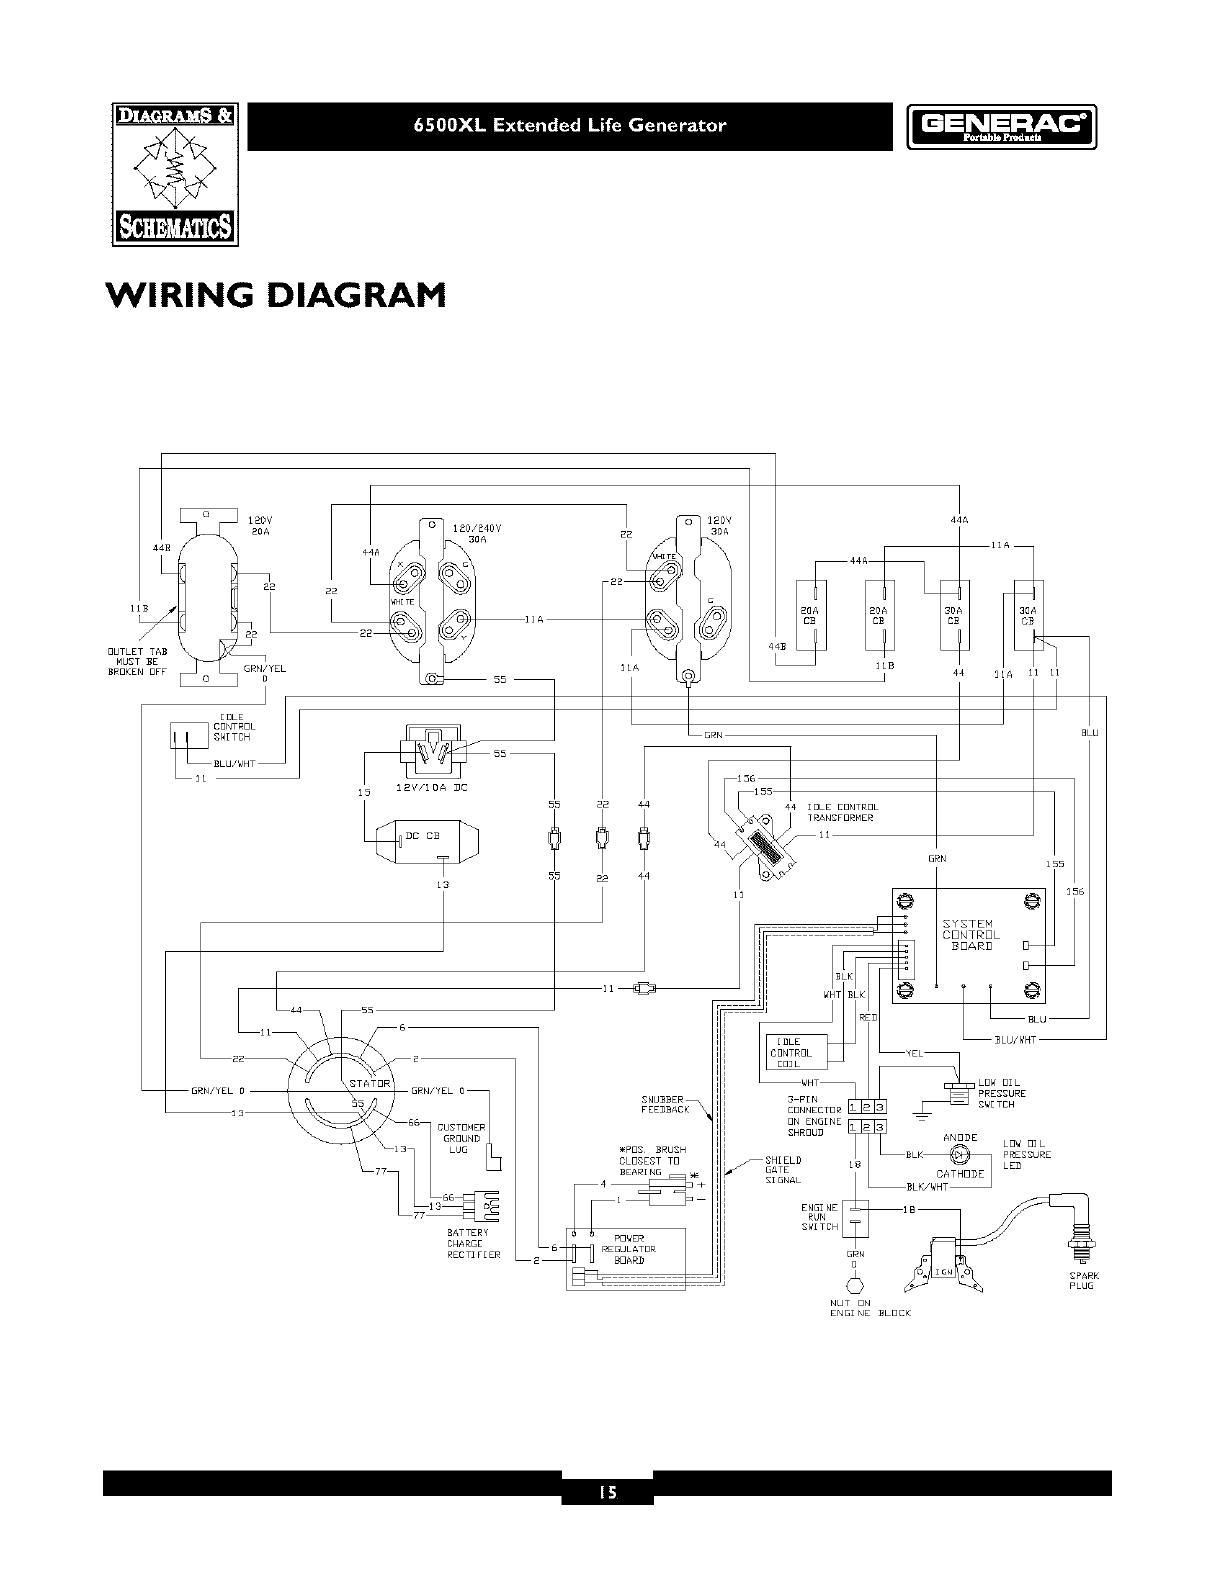 abacbfe4 09c9 46f3 b904 b7a0ca98baaa bgf page 15 of generac portable generator 6500xl user guide abac air compressor wiring diagram at sewacar.co